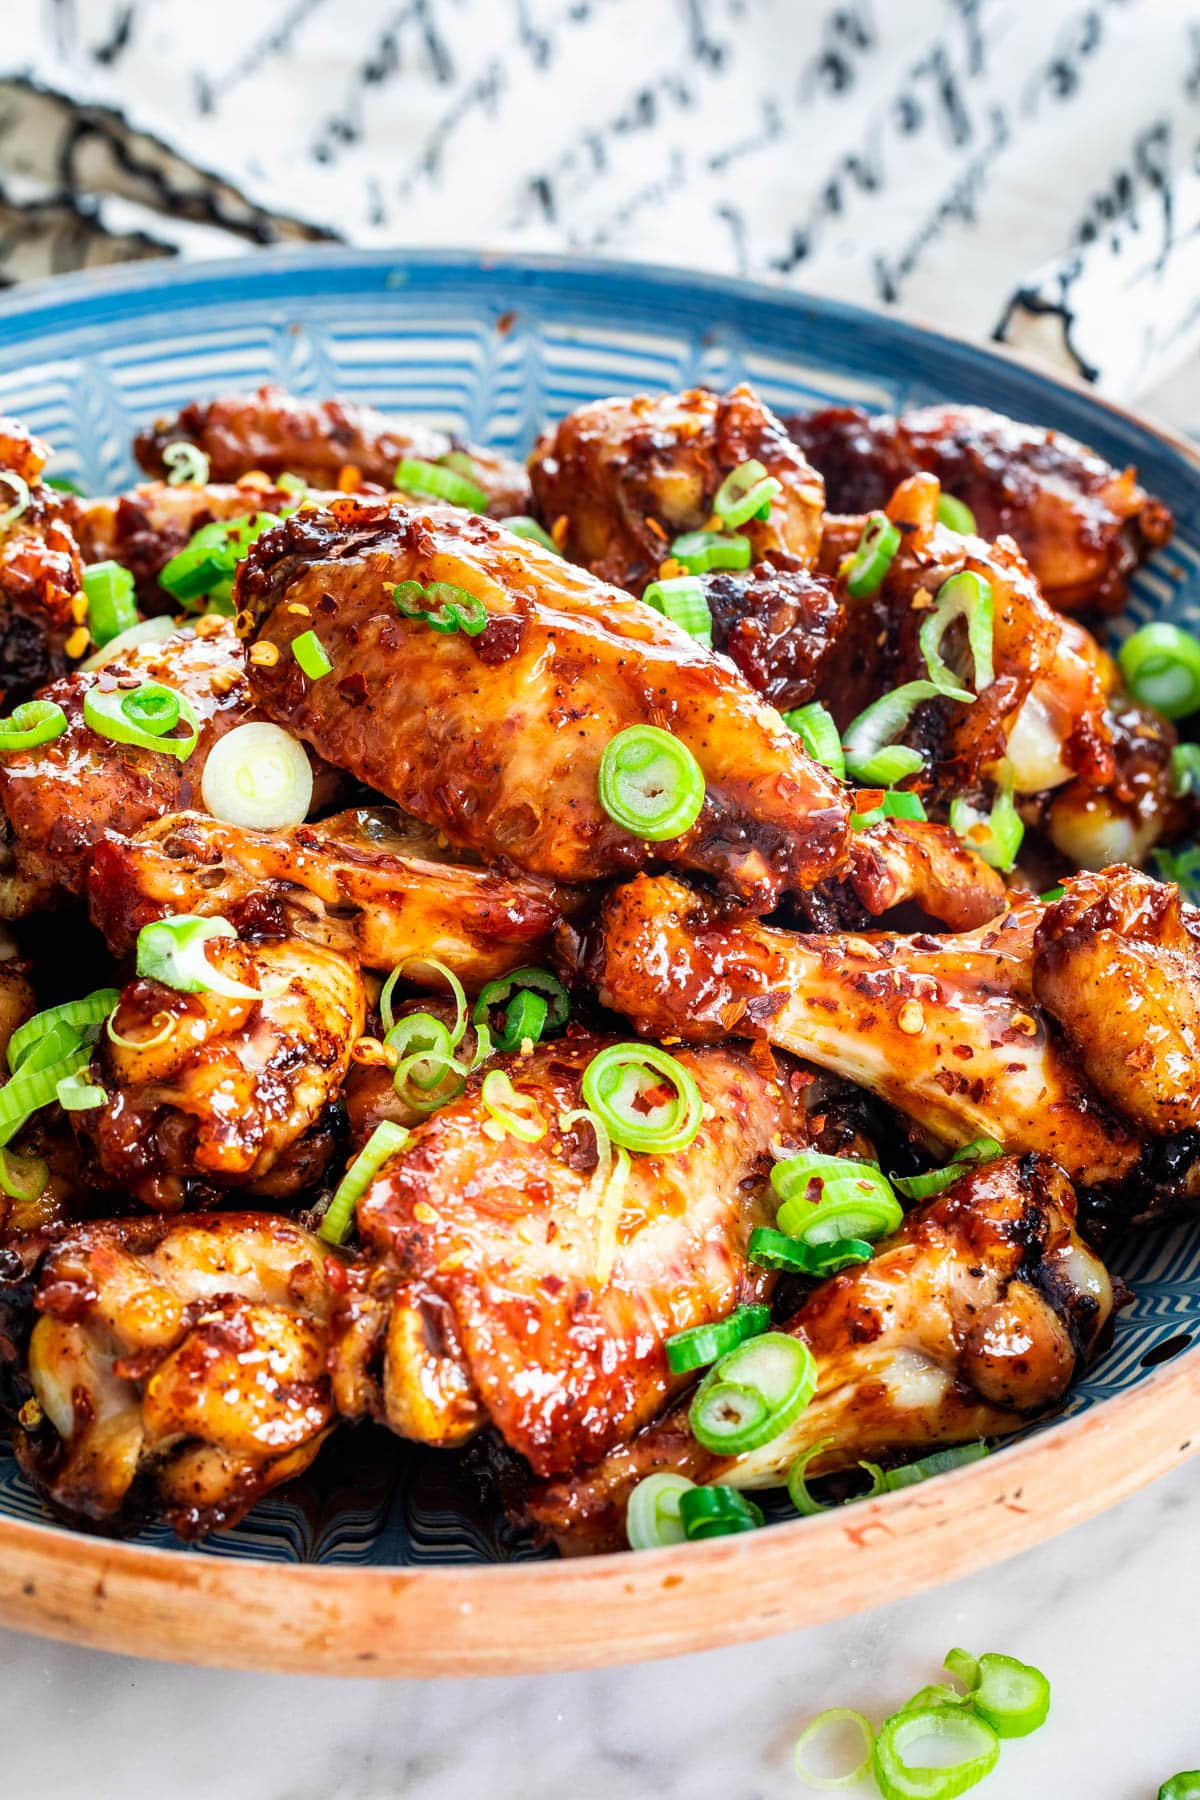 Honey Garlic Chicken Wings in a blue bowl garnished with green onions